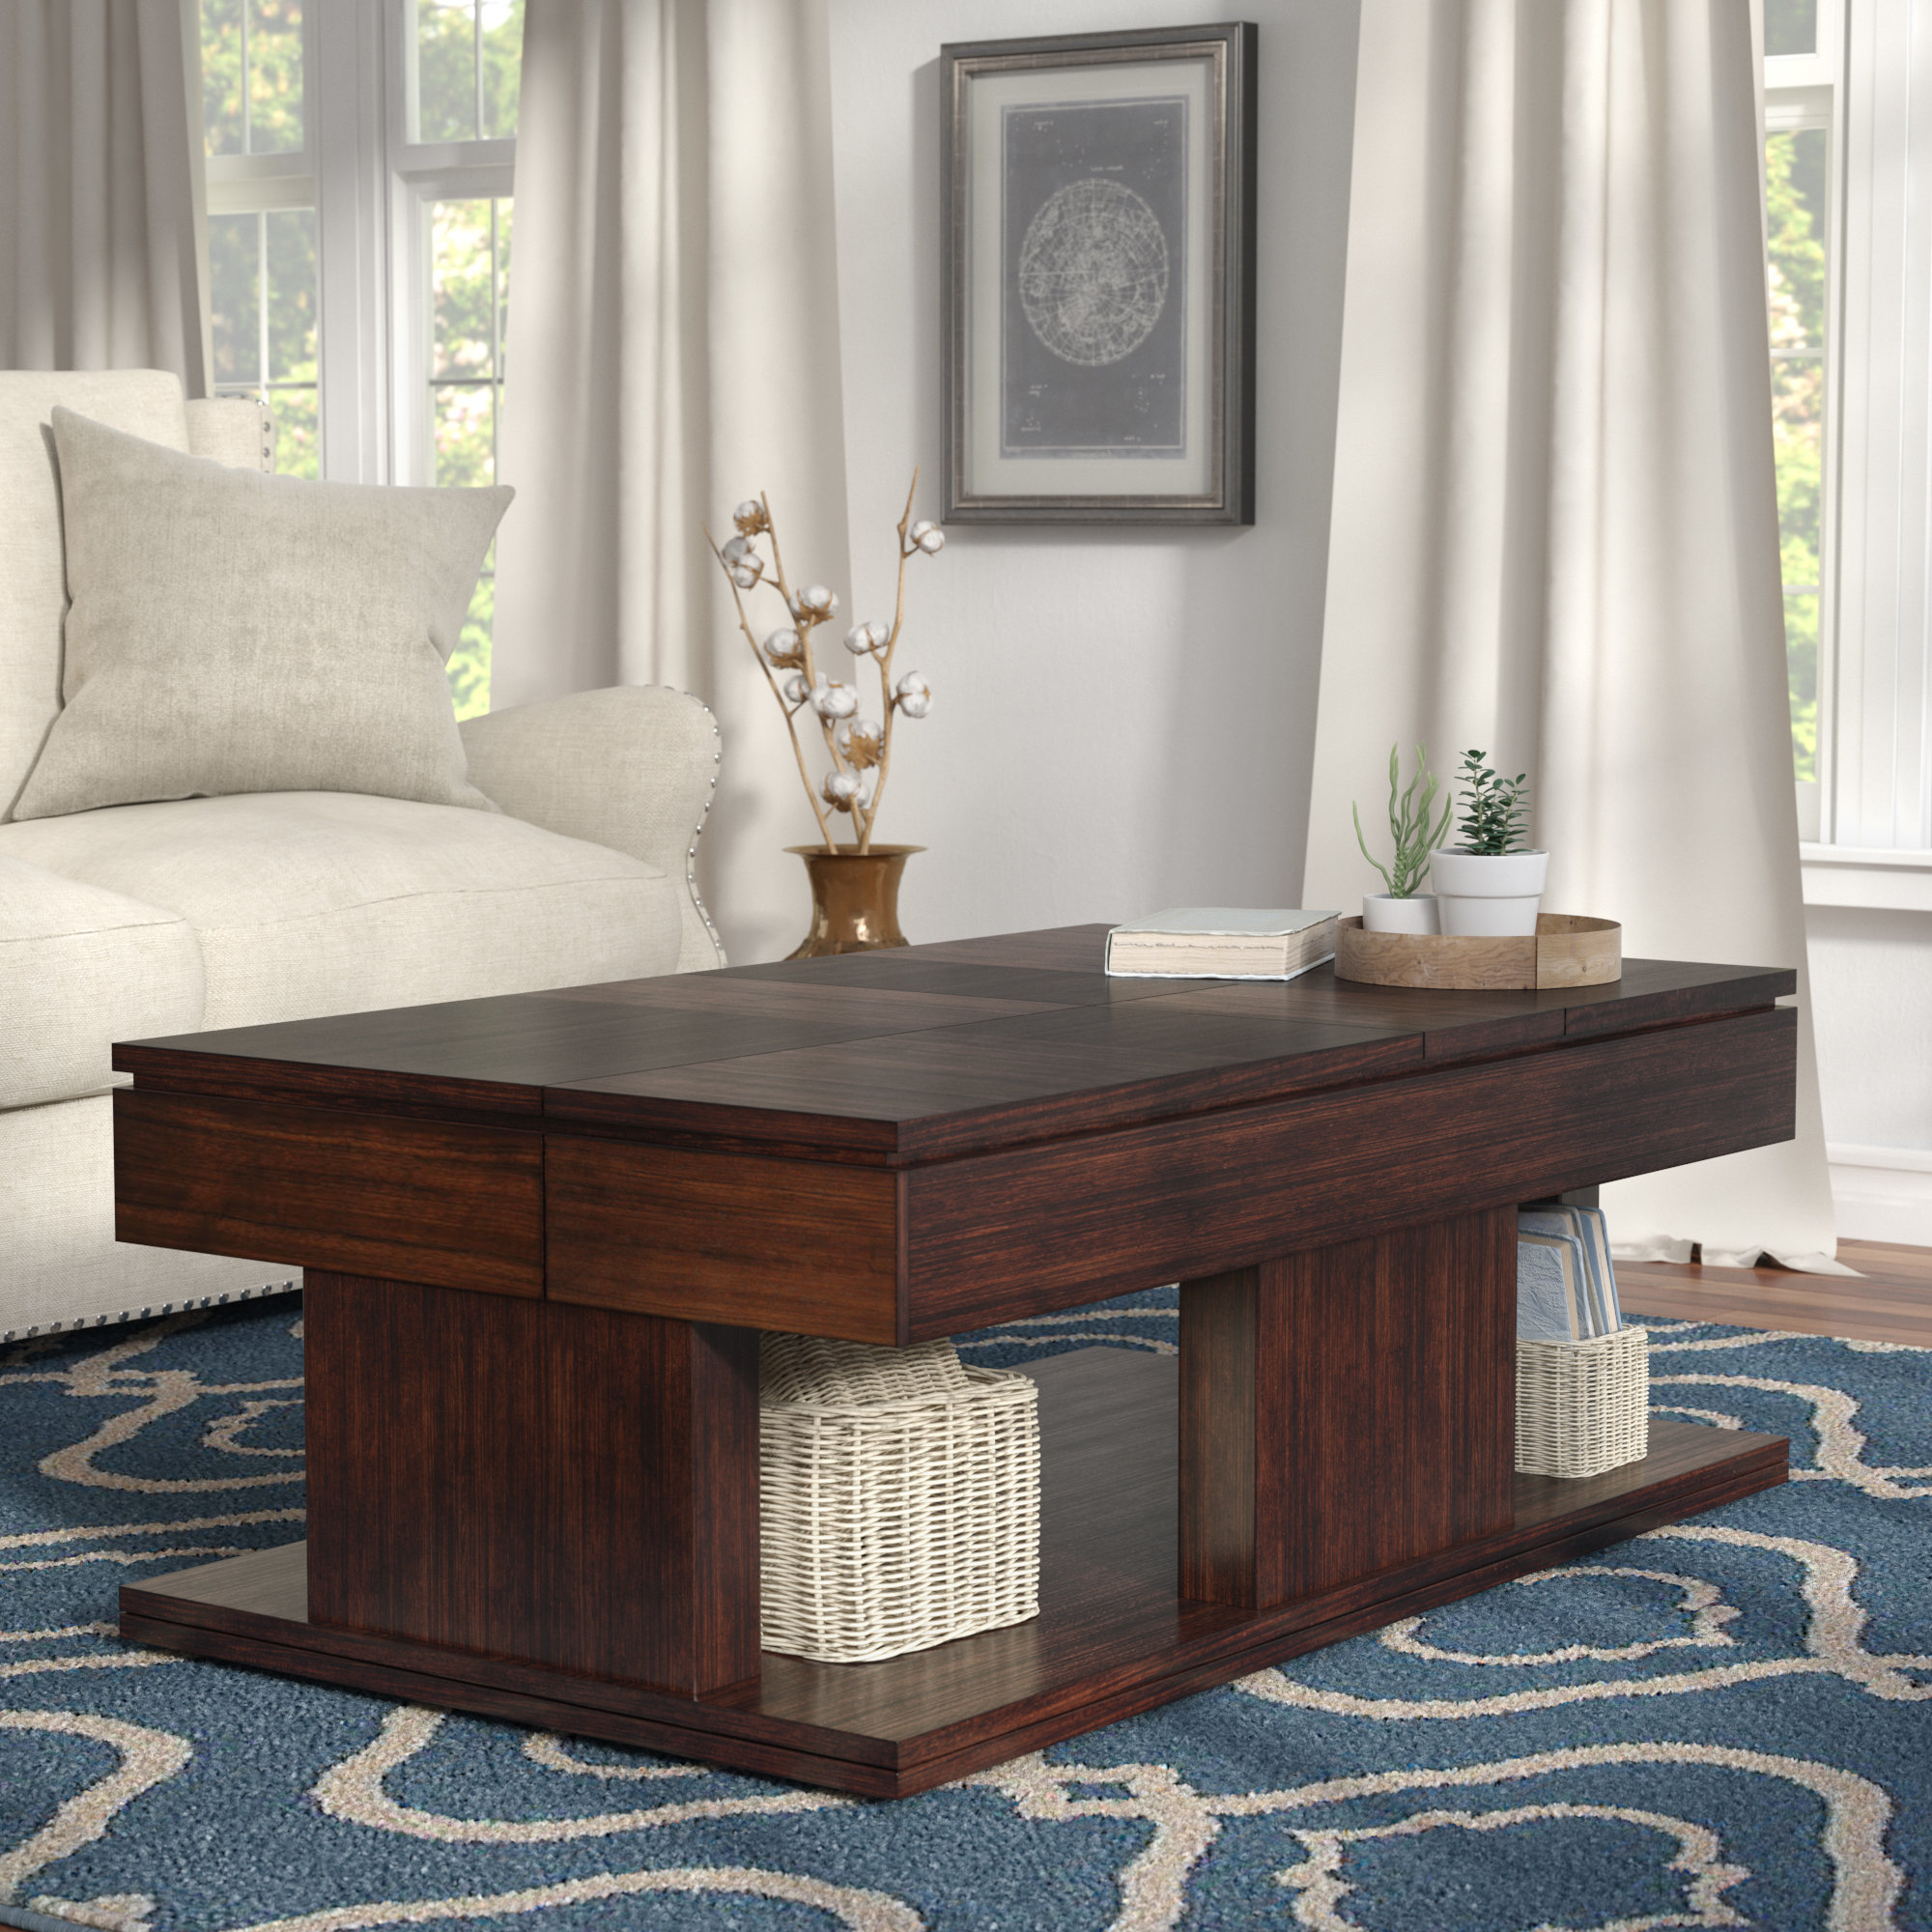 Darby Home Co Janene Lift Top Coffee Table (View 8 of 20)